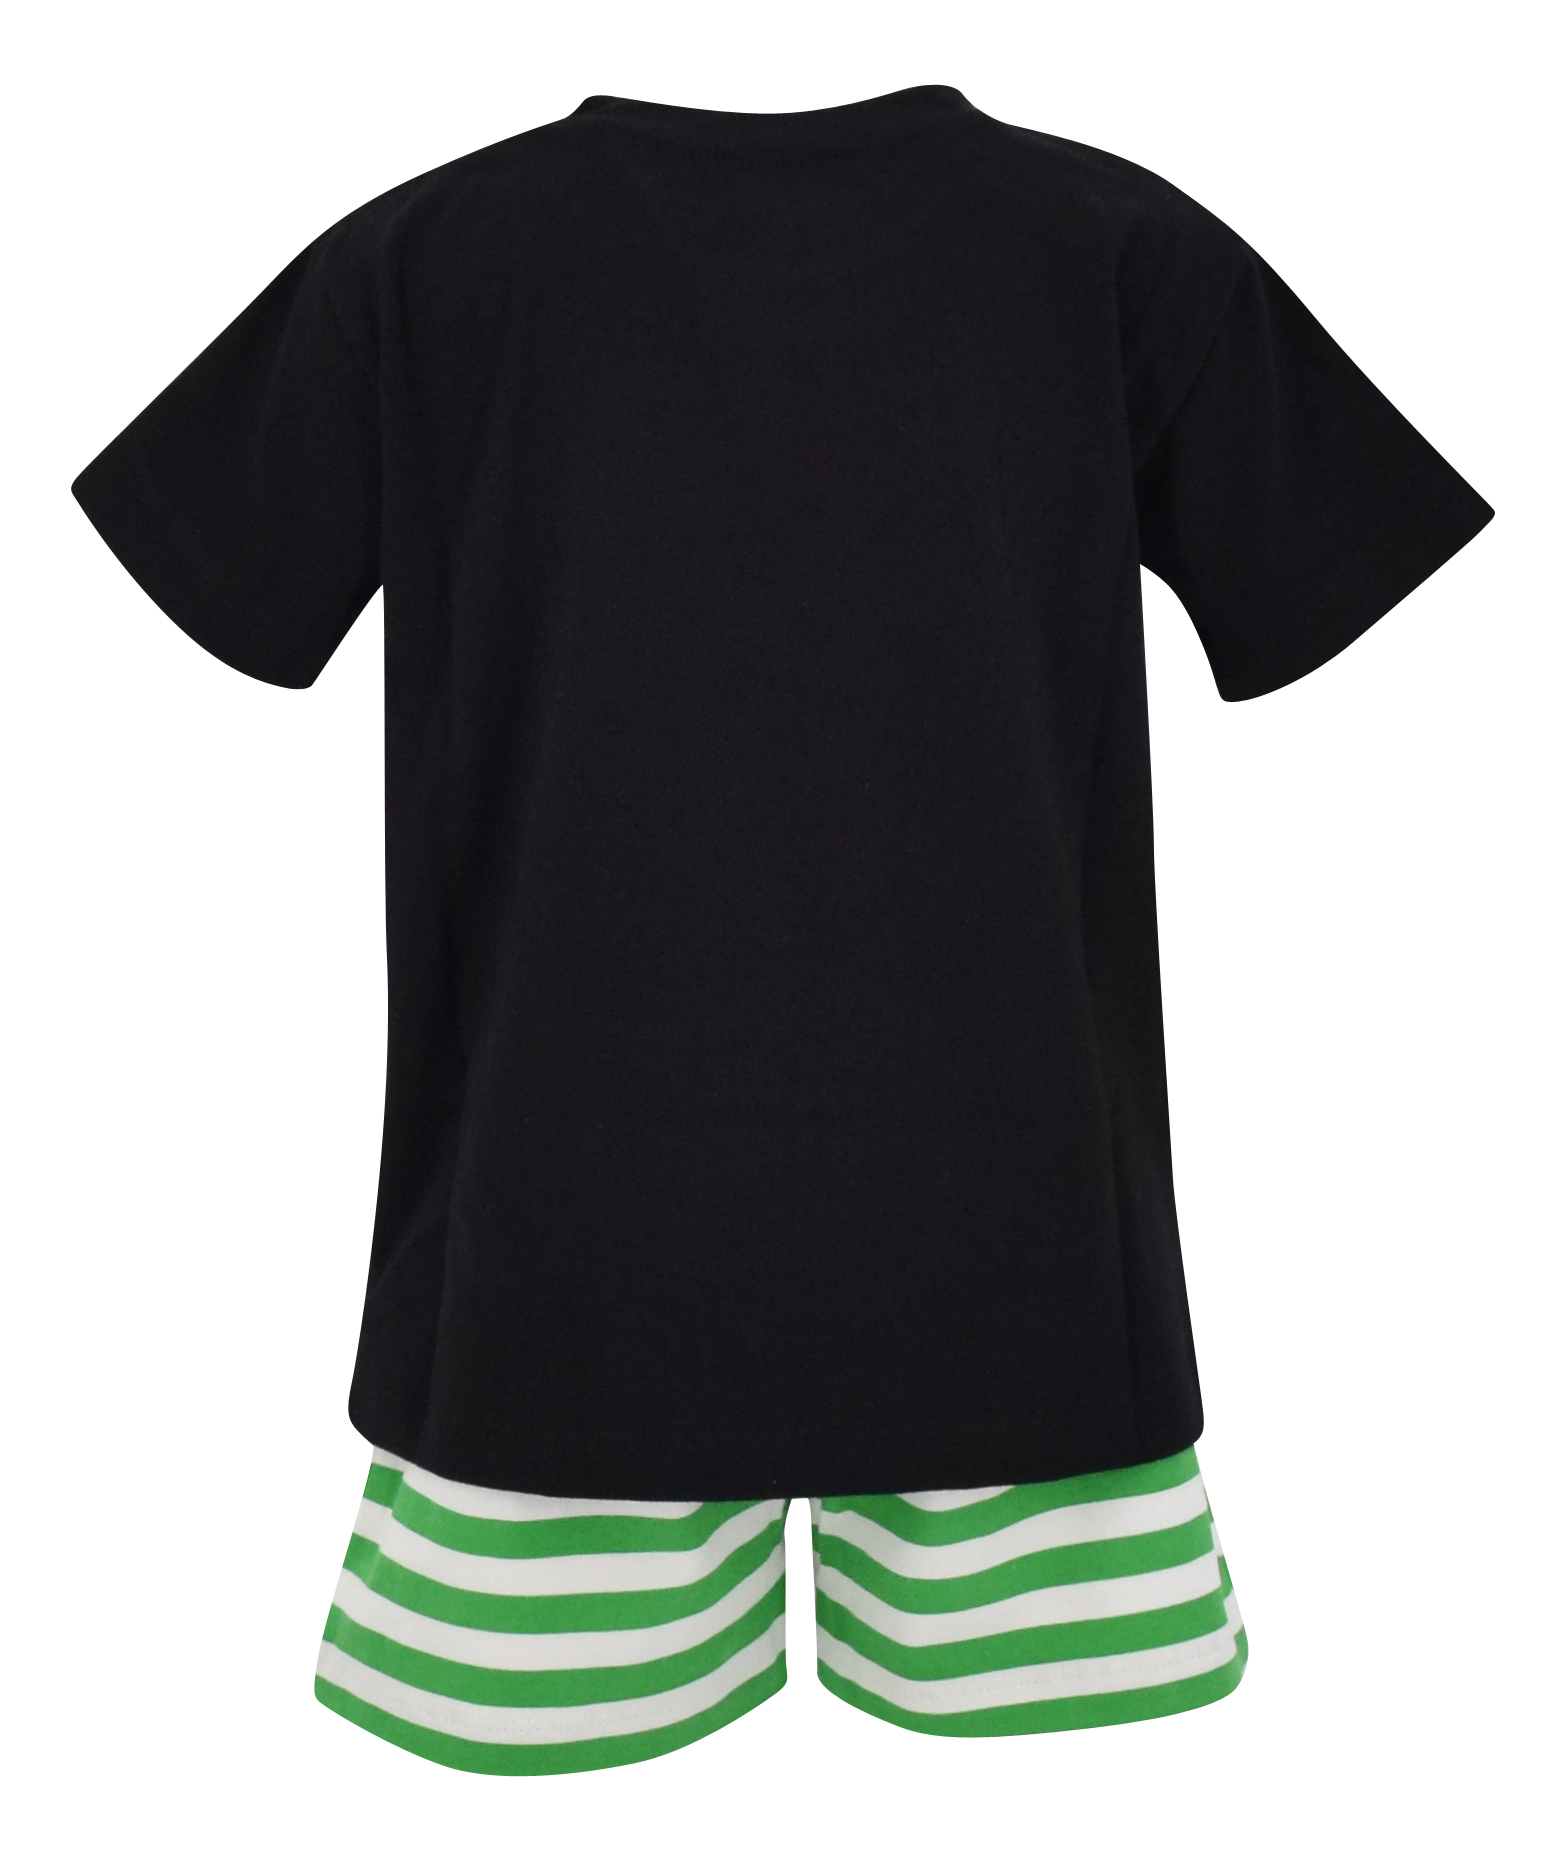 Boys-2-Piece-ST-Patricks-Day-Clover-Outfit-2t-3t-4t-5-6-7-8-Toddler-Kids-Clothes thumbnail 21